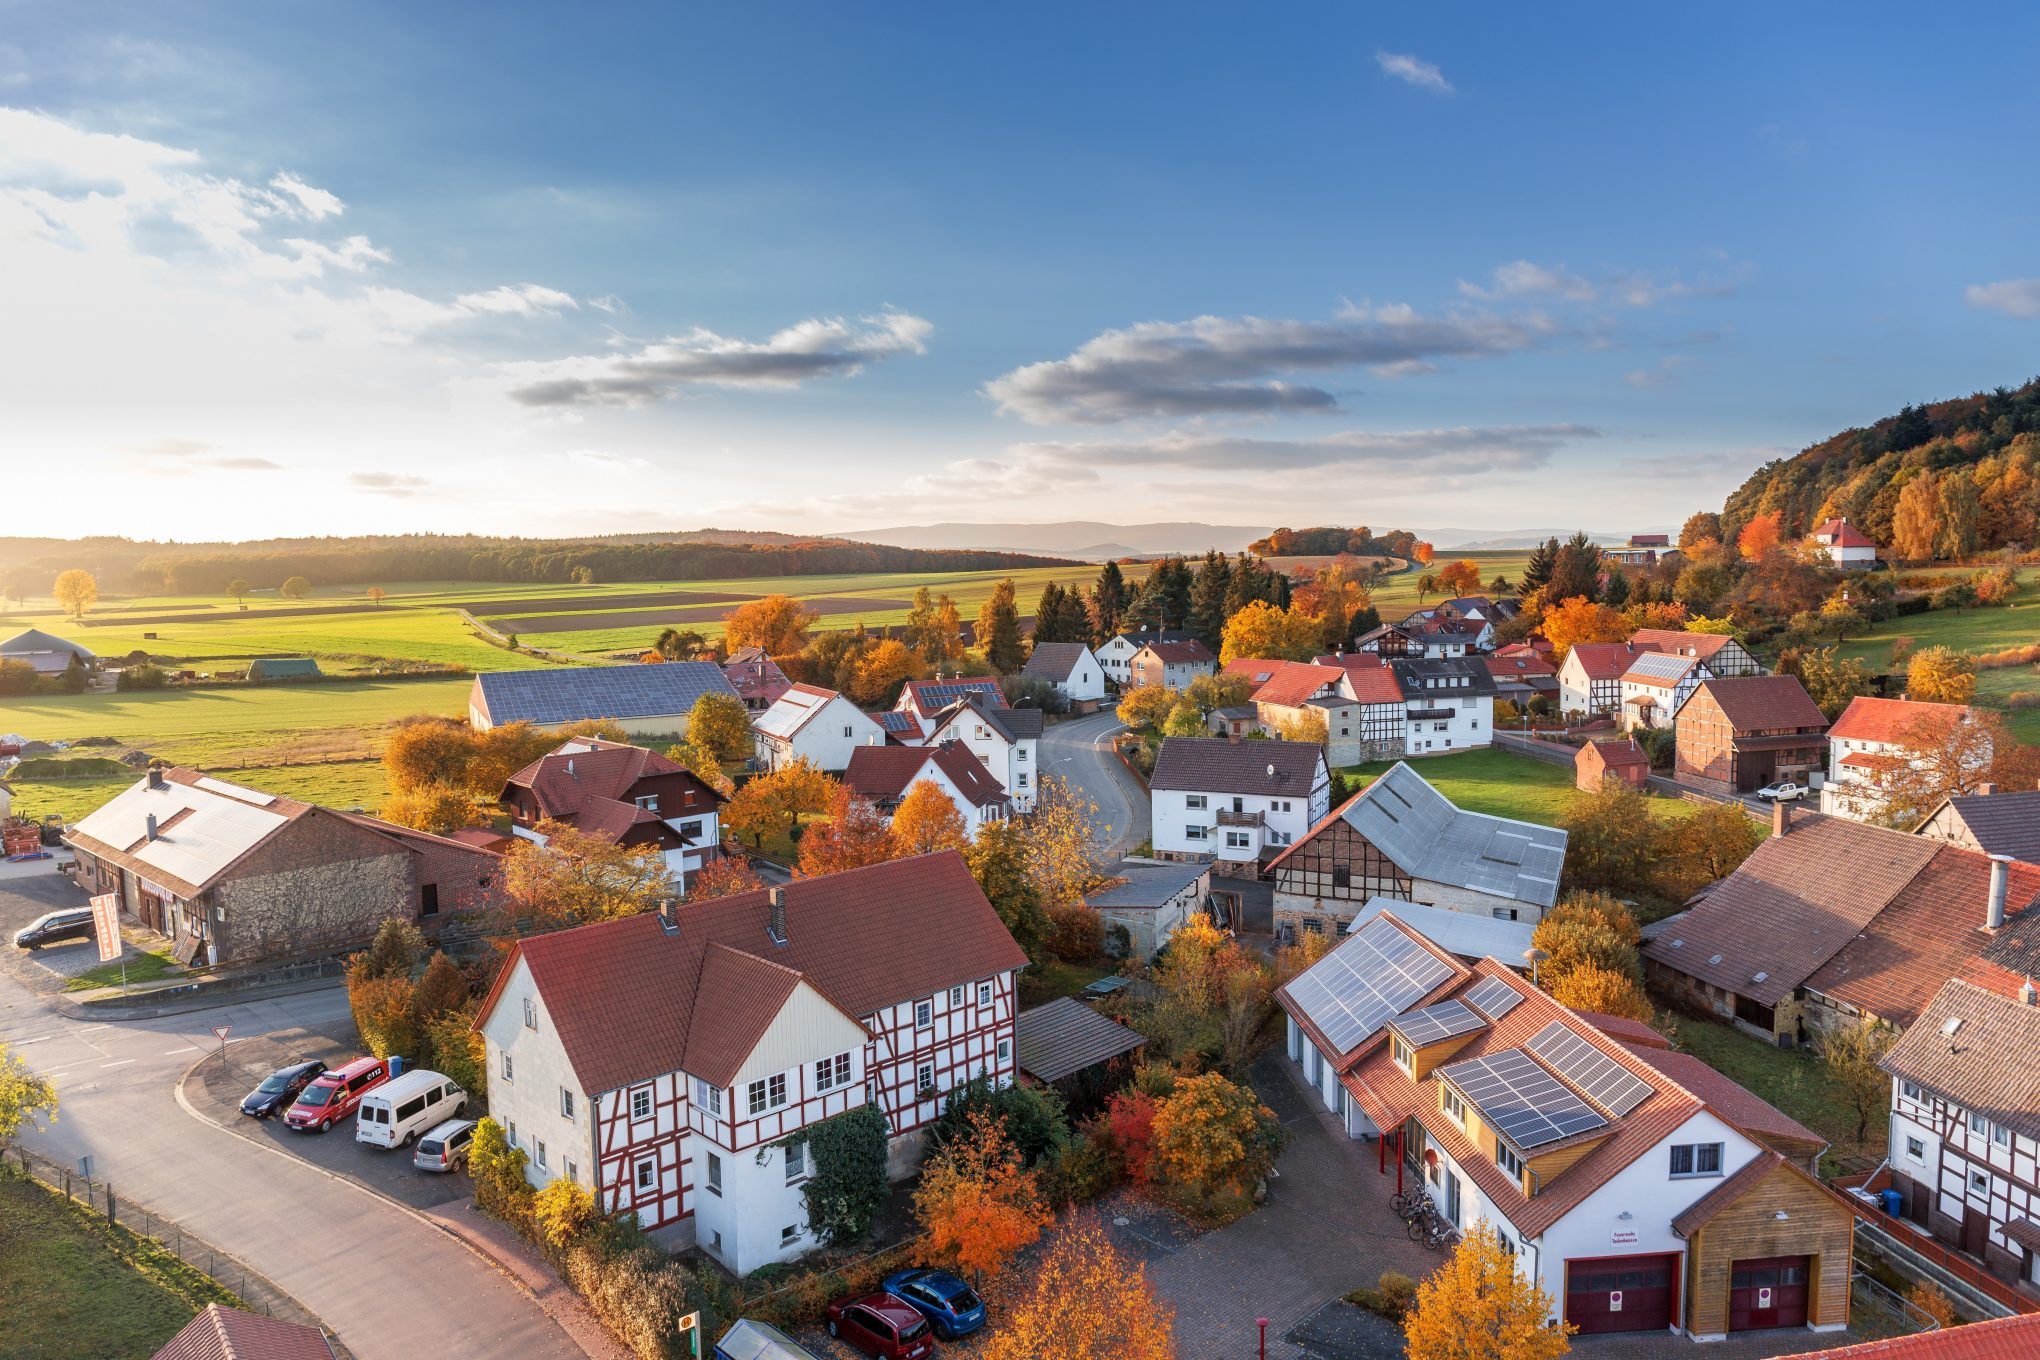 Rural houses in autumn